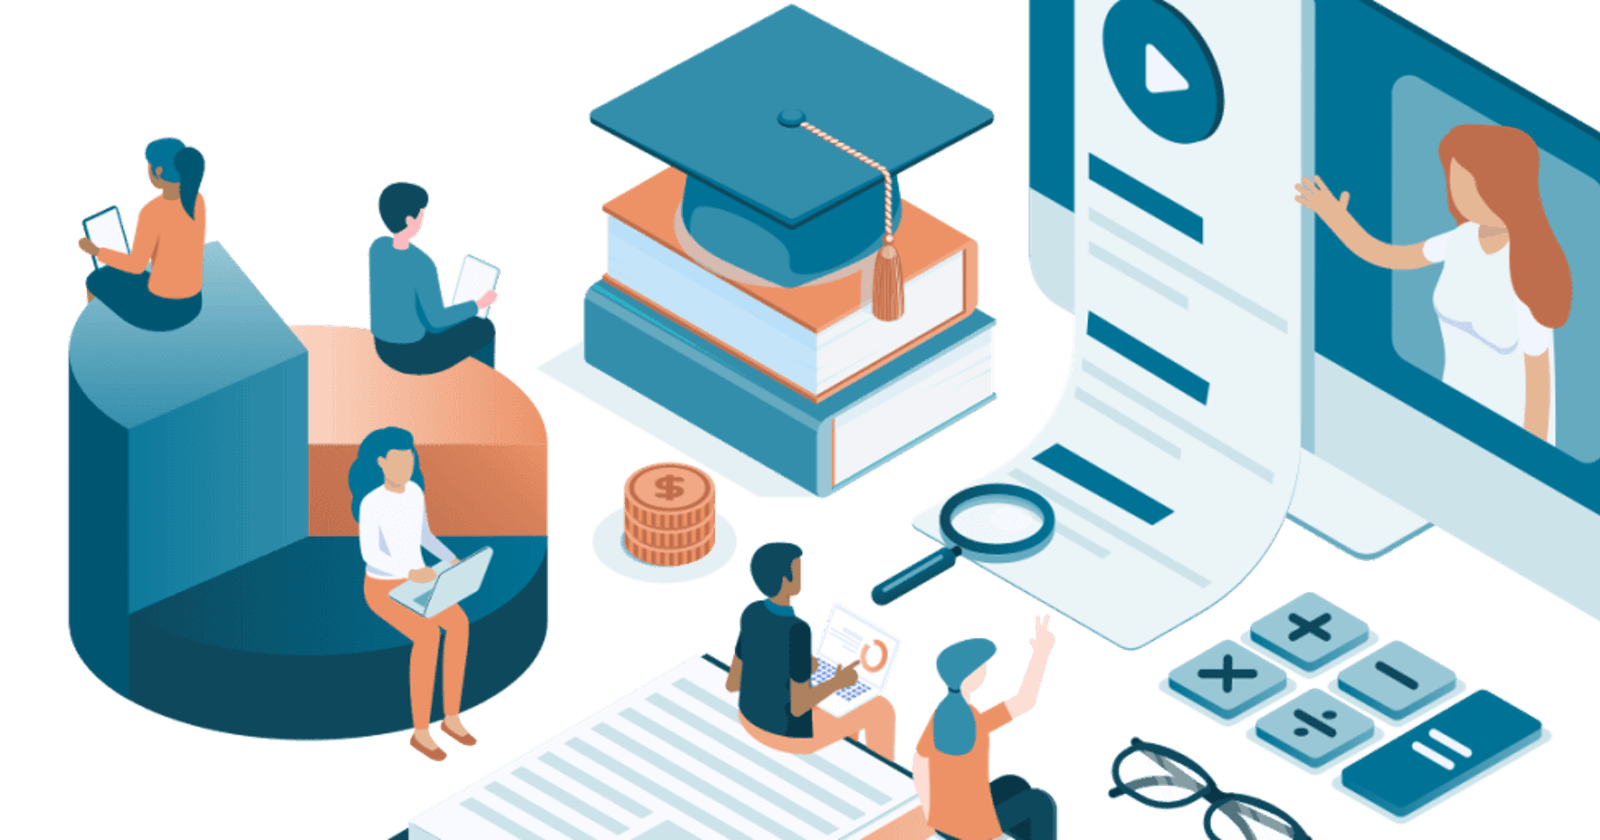 The future of learning and upskilling